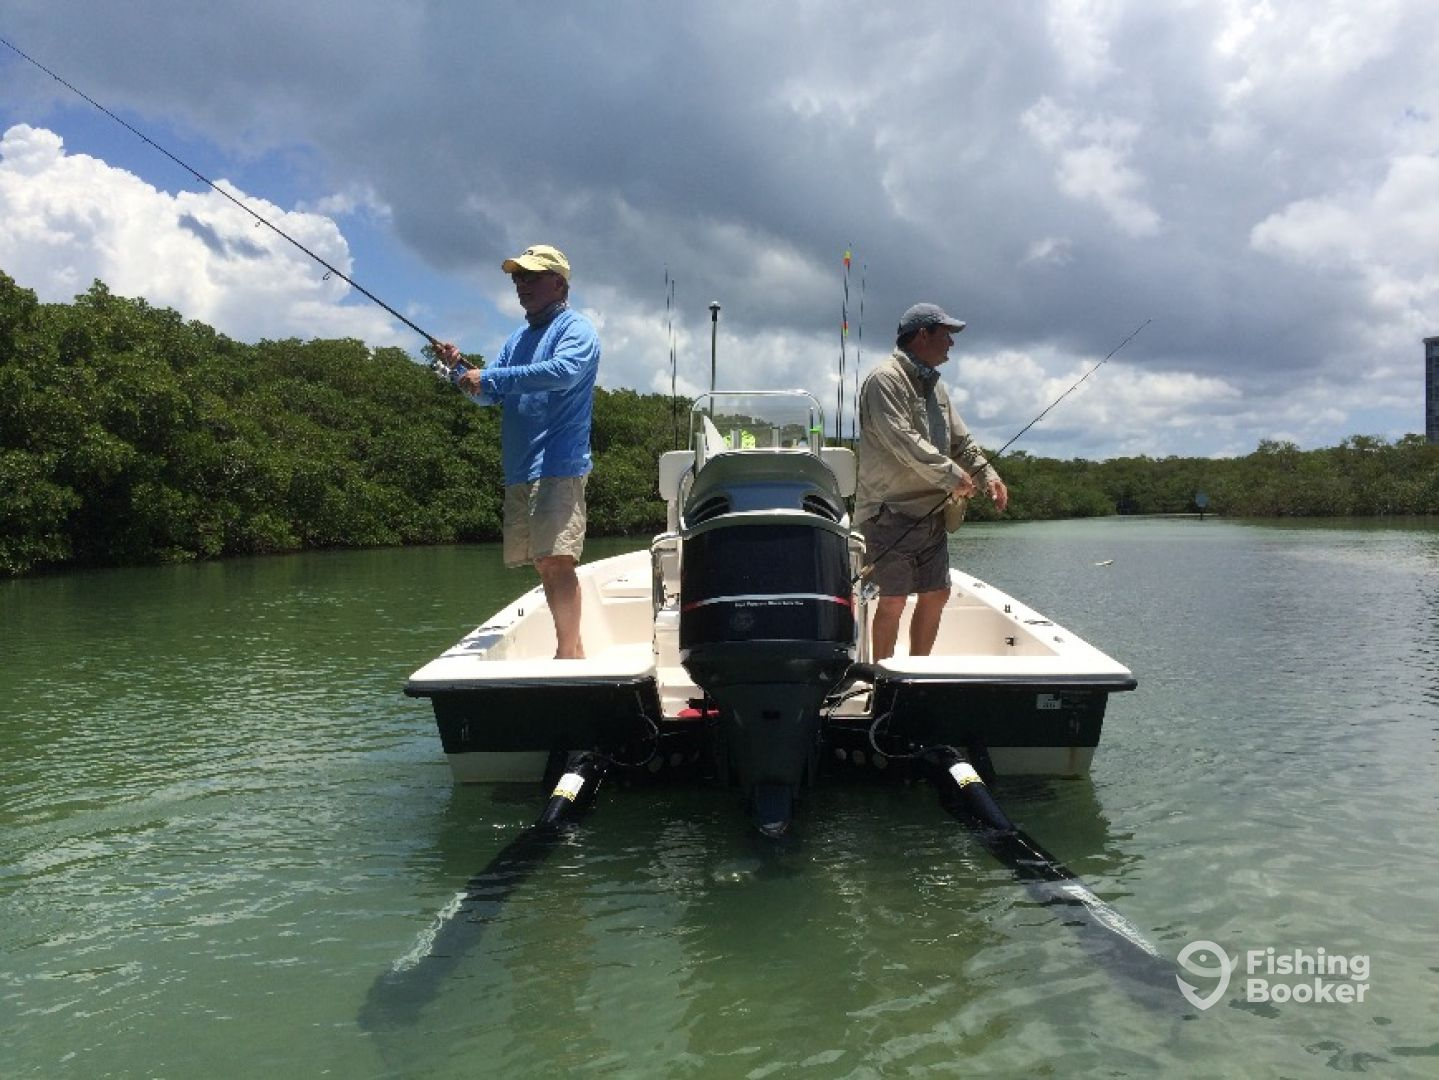 Chasin tales fishing charters naples fl fishingbooker for Fishing charters naples fl